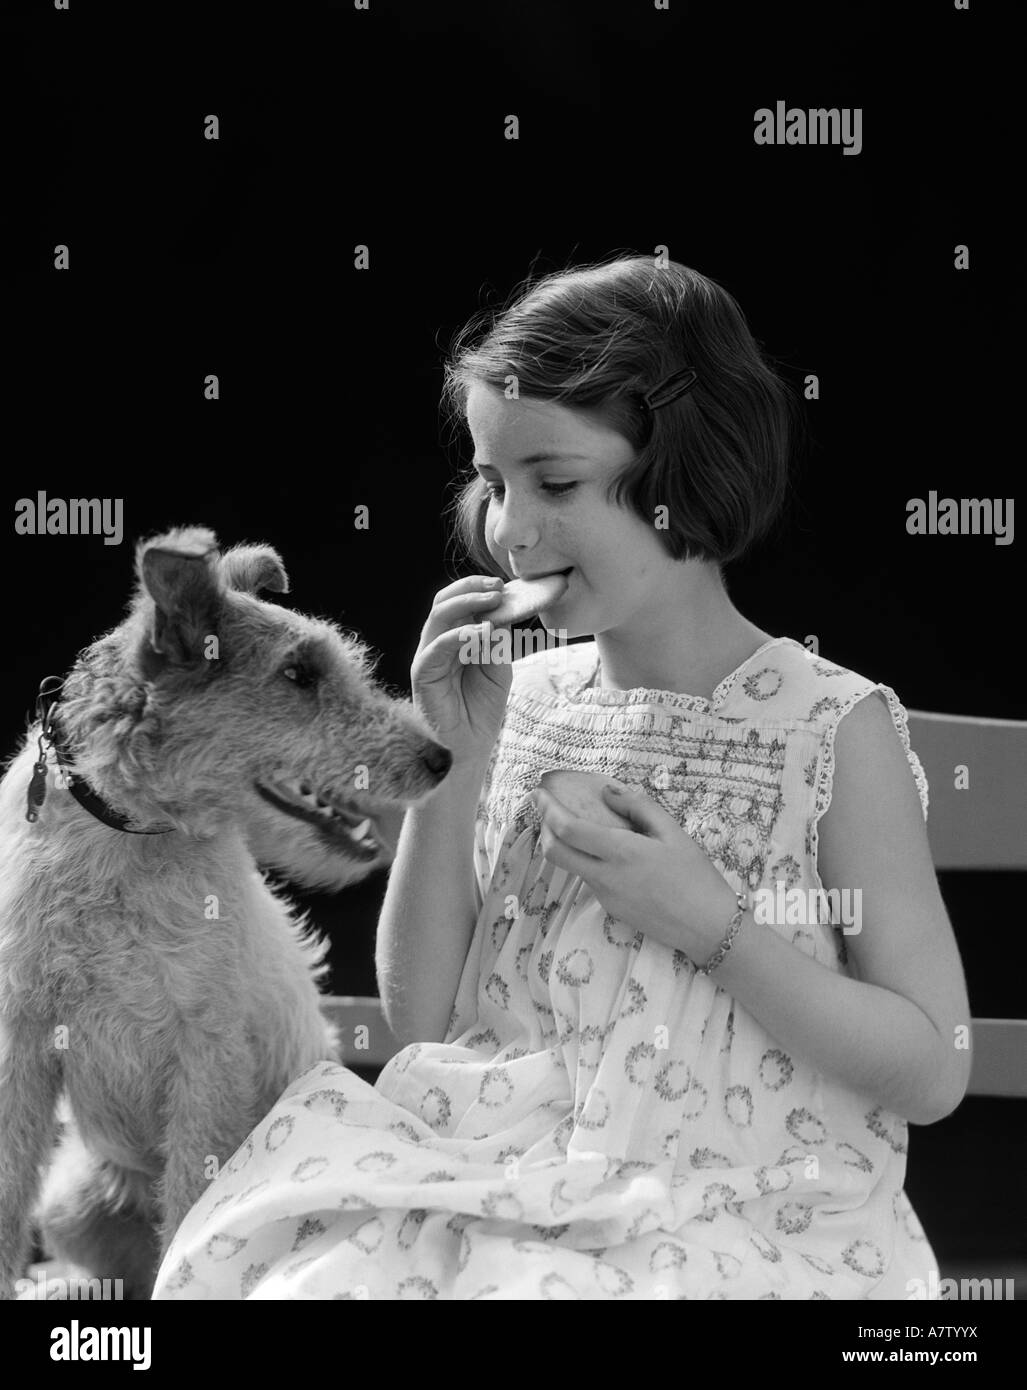 1920s 1930s WIRE HAIR TERRIER DOG WATCHING YOUNG GIRL EATING COOKIE - Stock Image